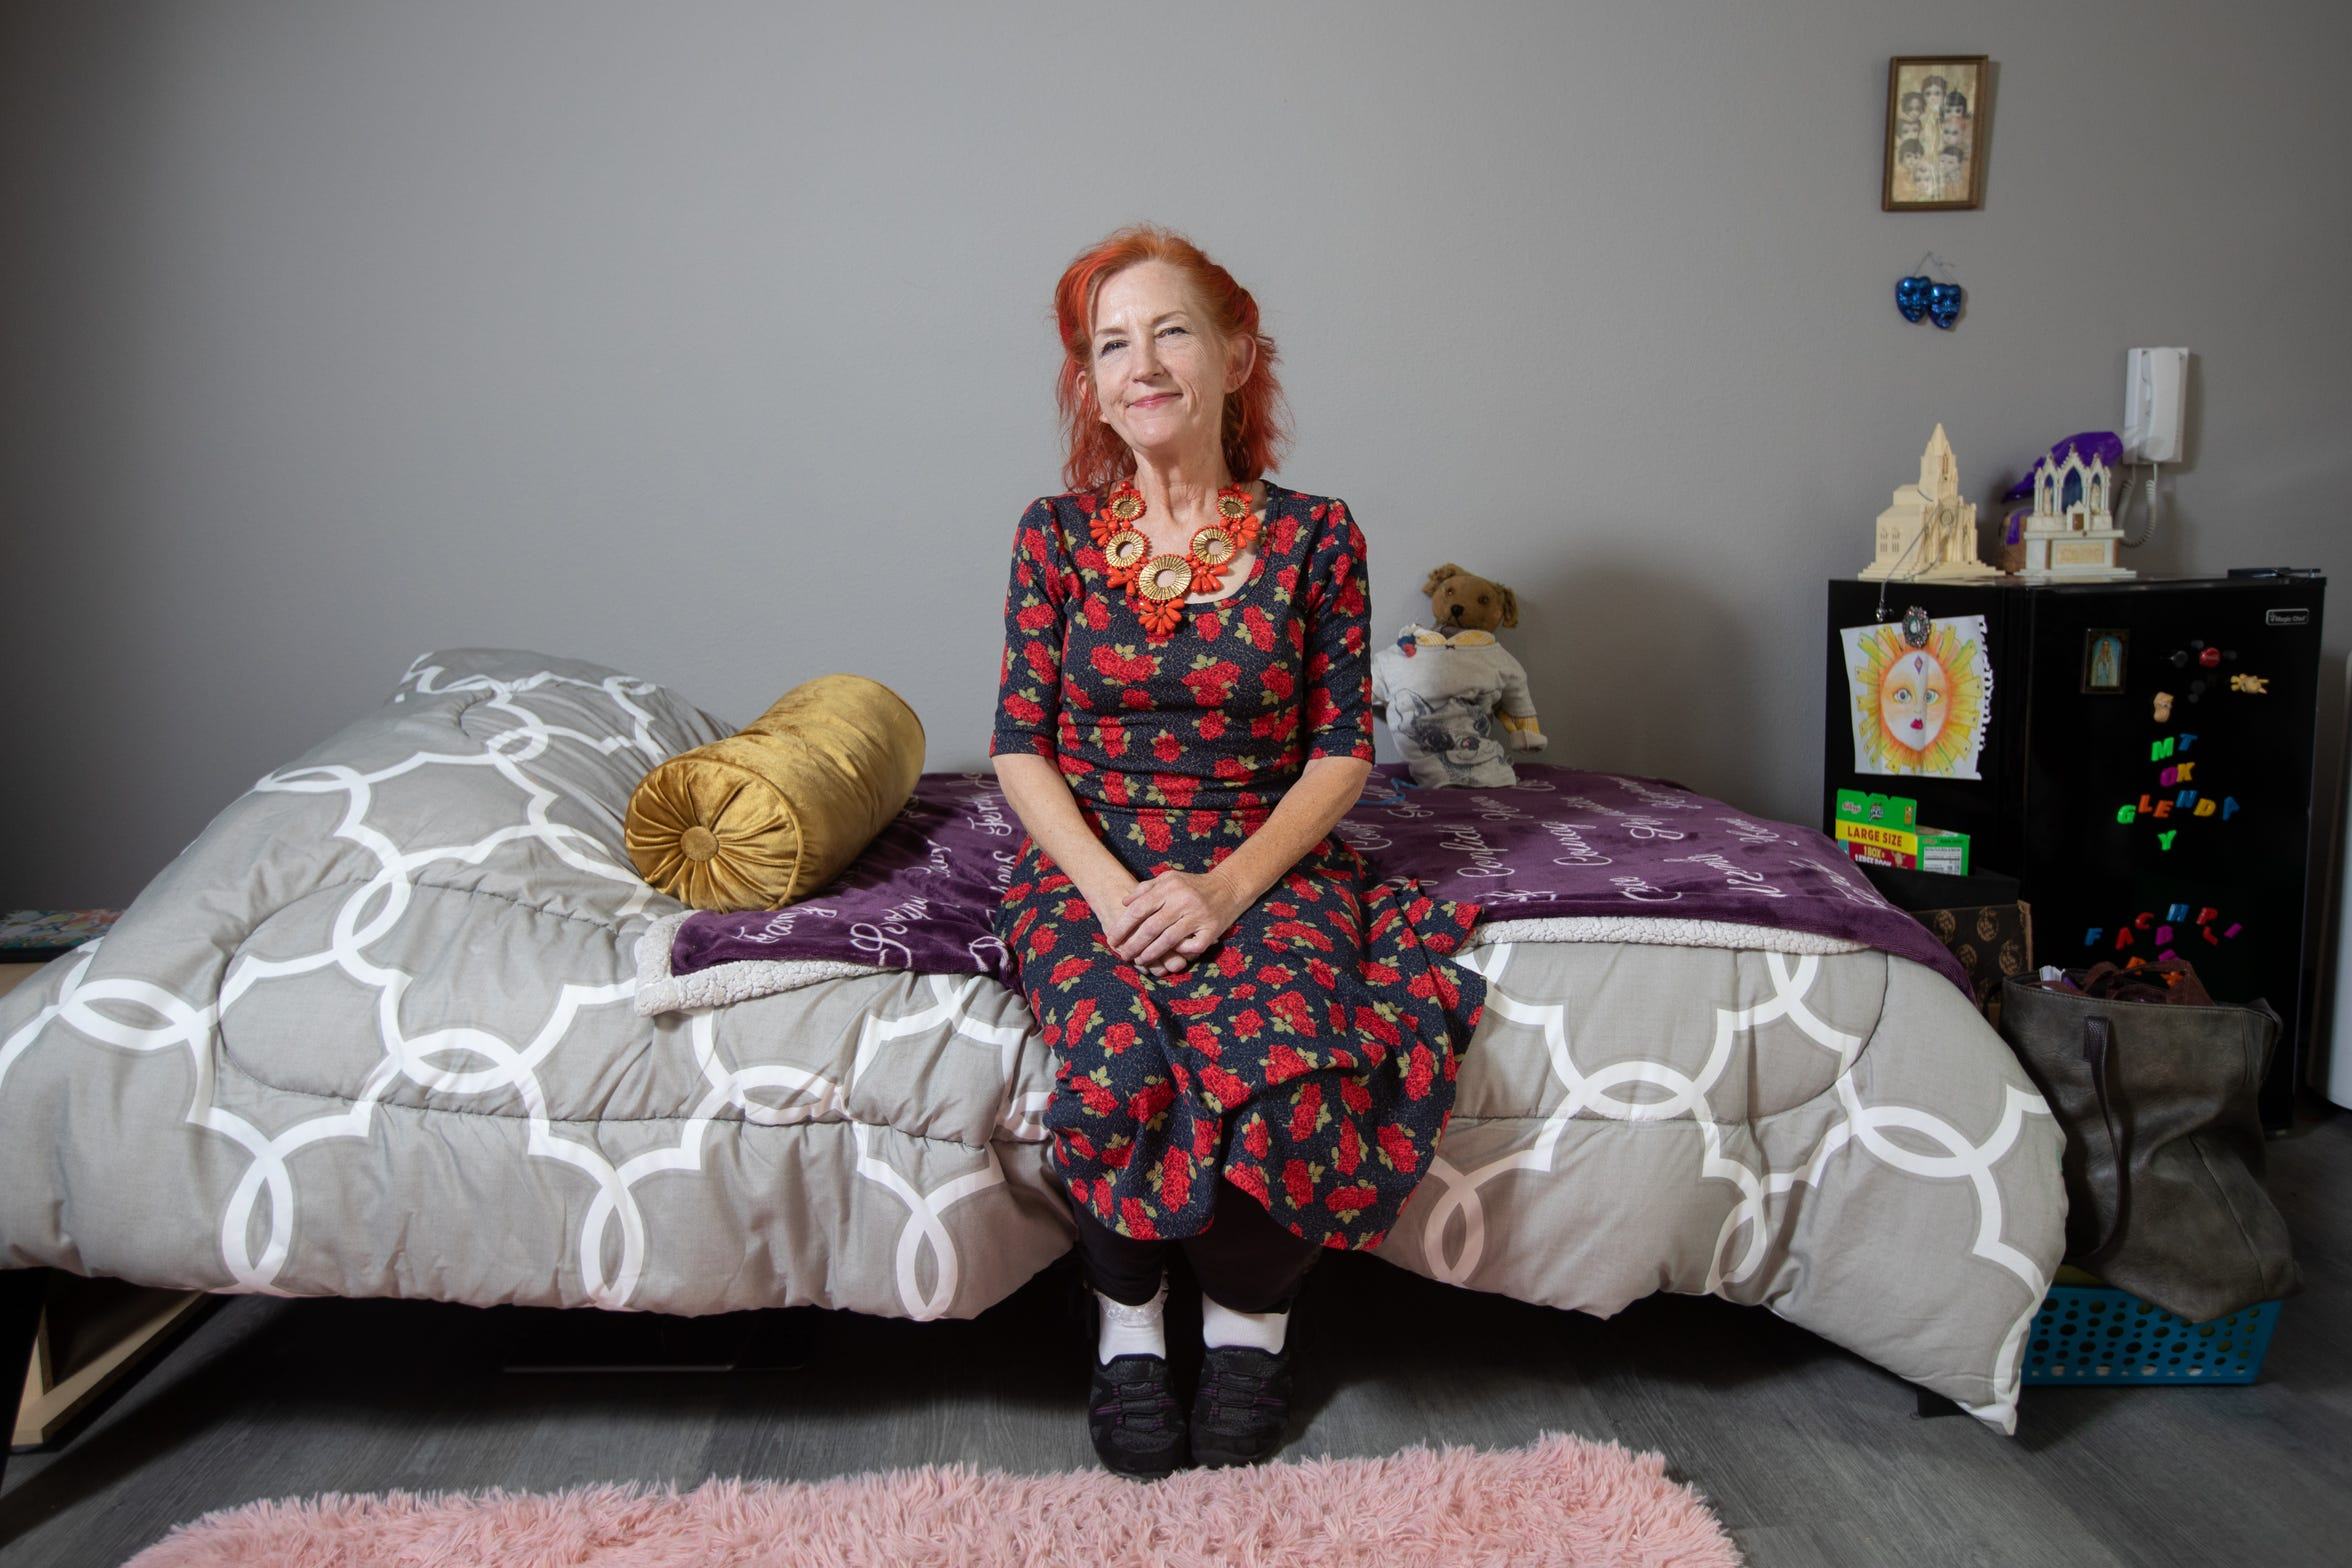 Glenda Meyer, 57, sits on the bed of her apartment at Redwood Crossings.